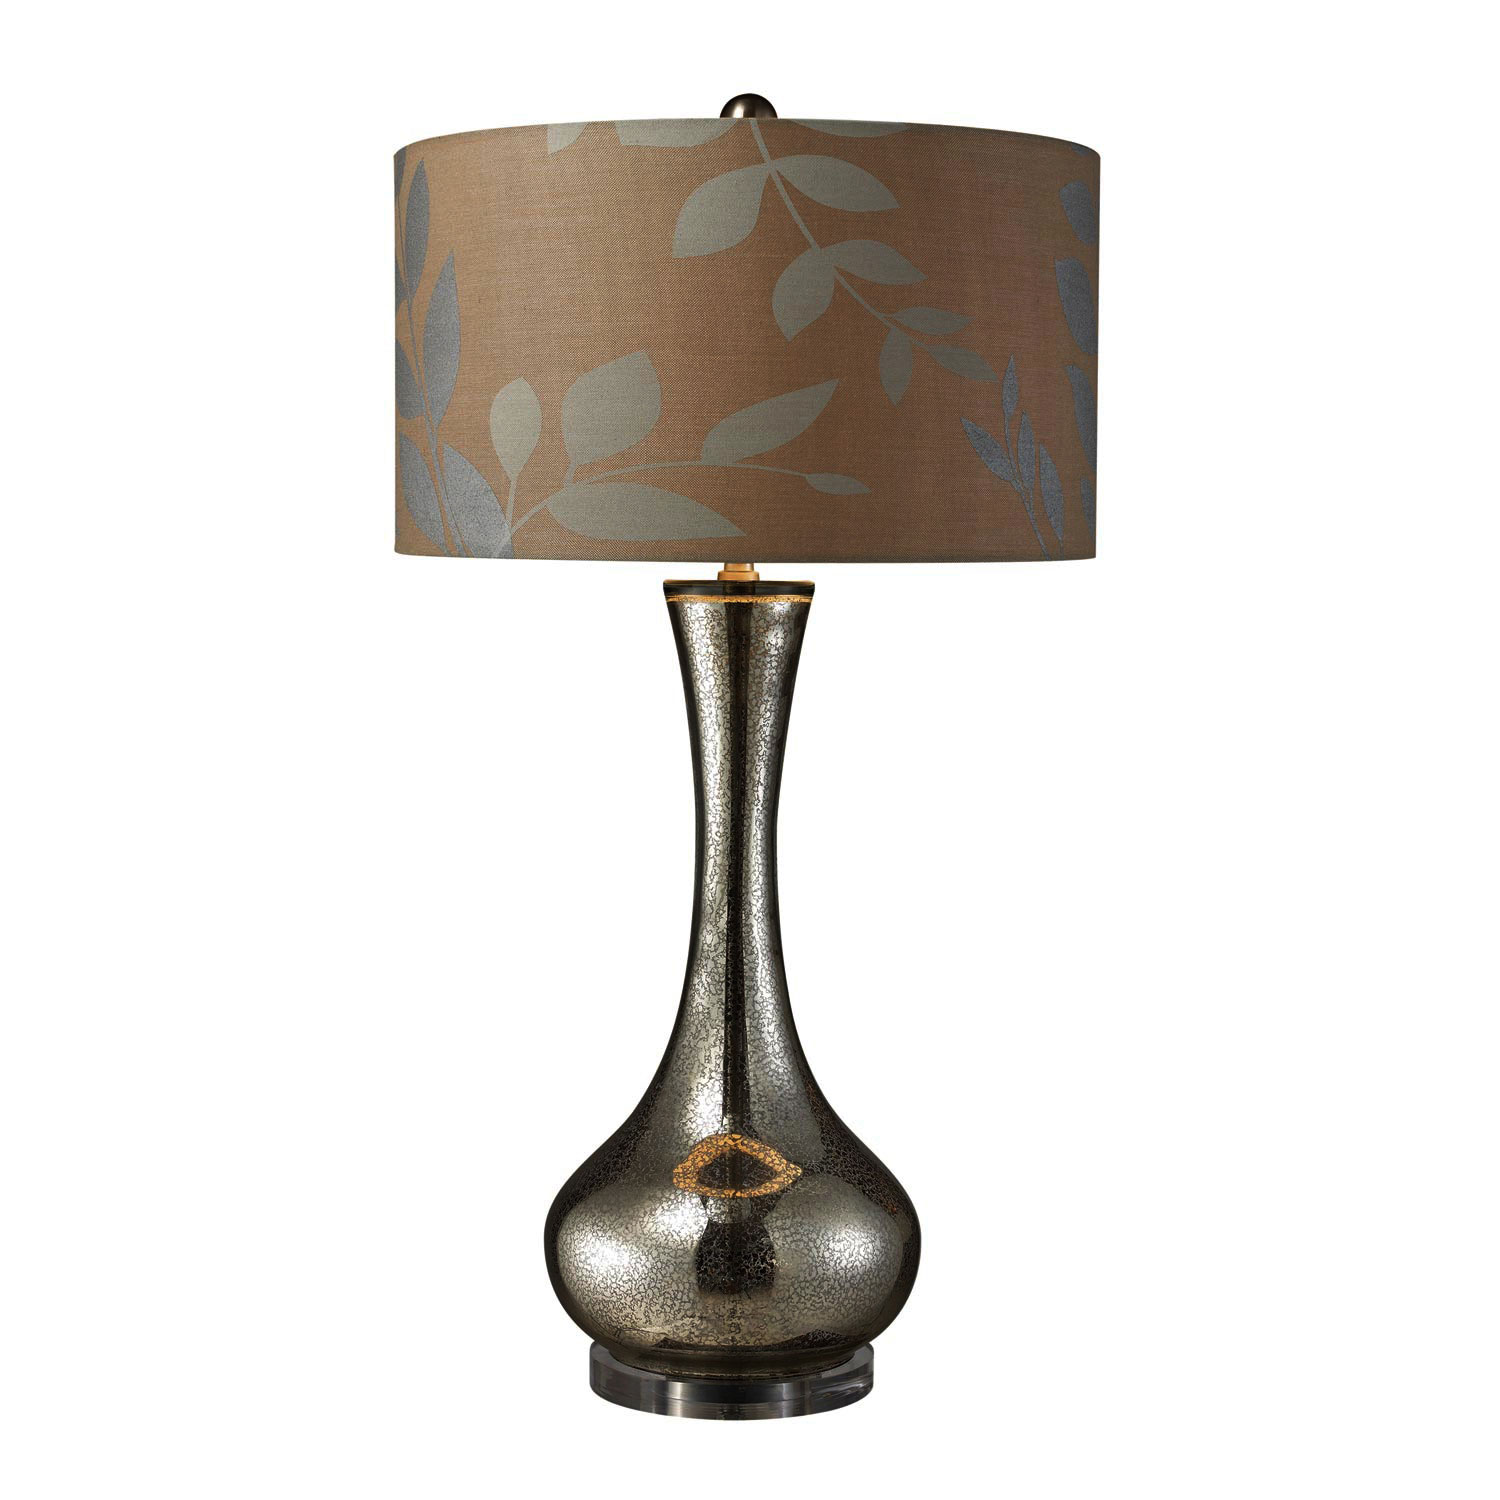 Elk Lighting D1883 Orion Table Lamp - Mercury Blown Glass